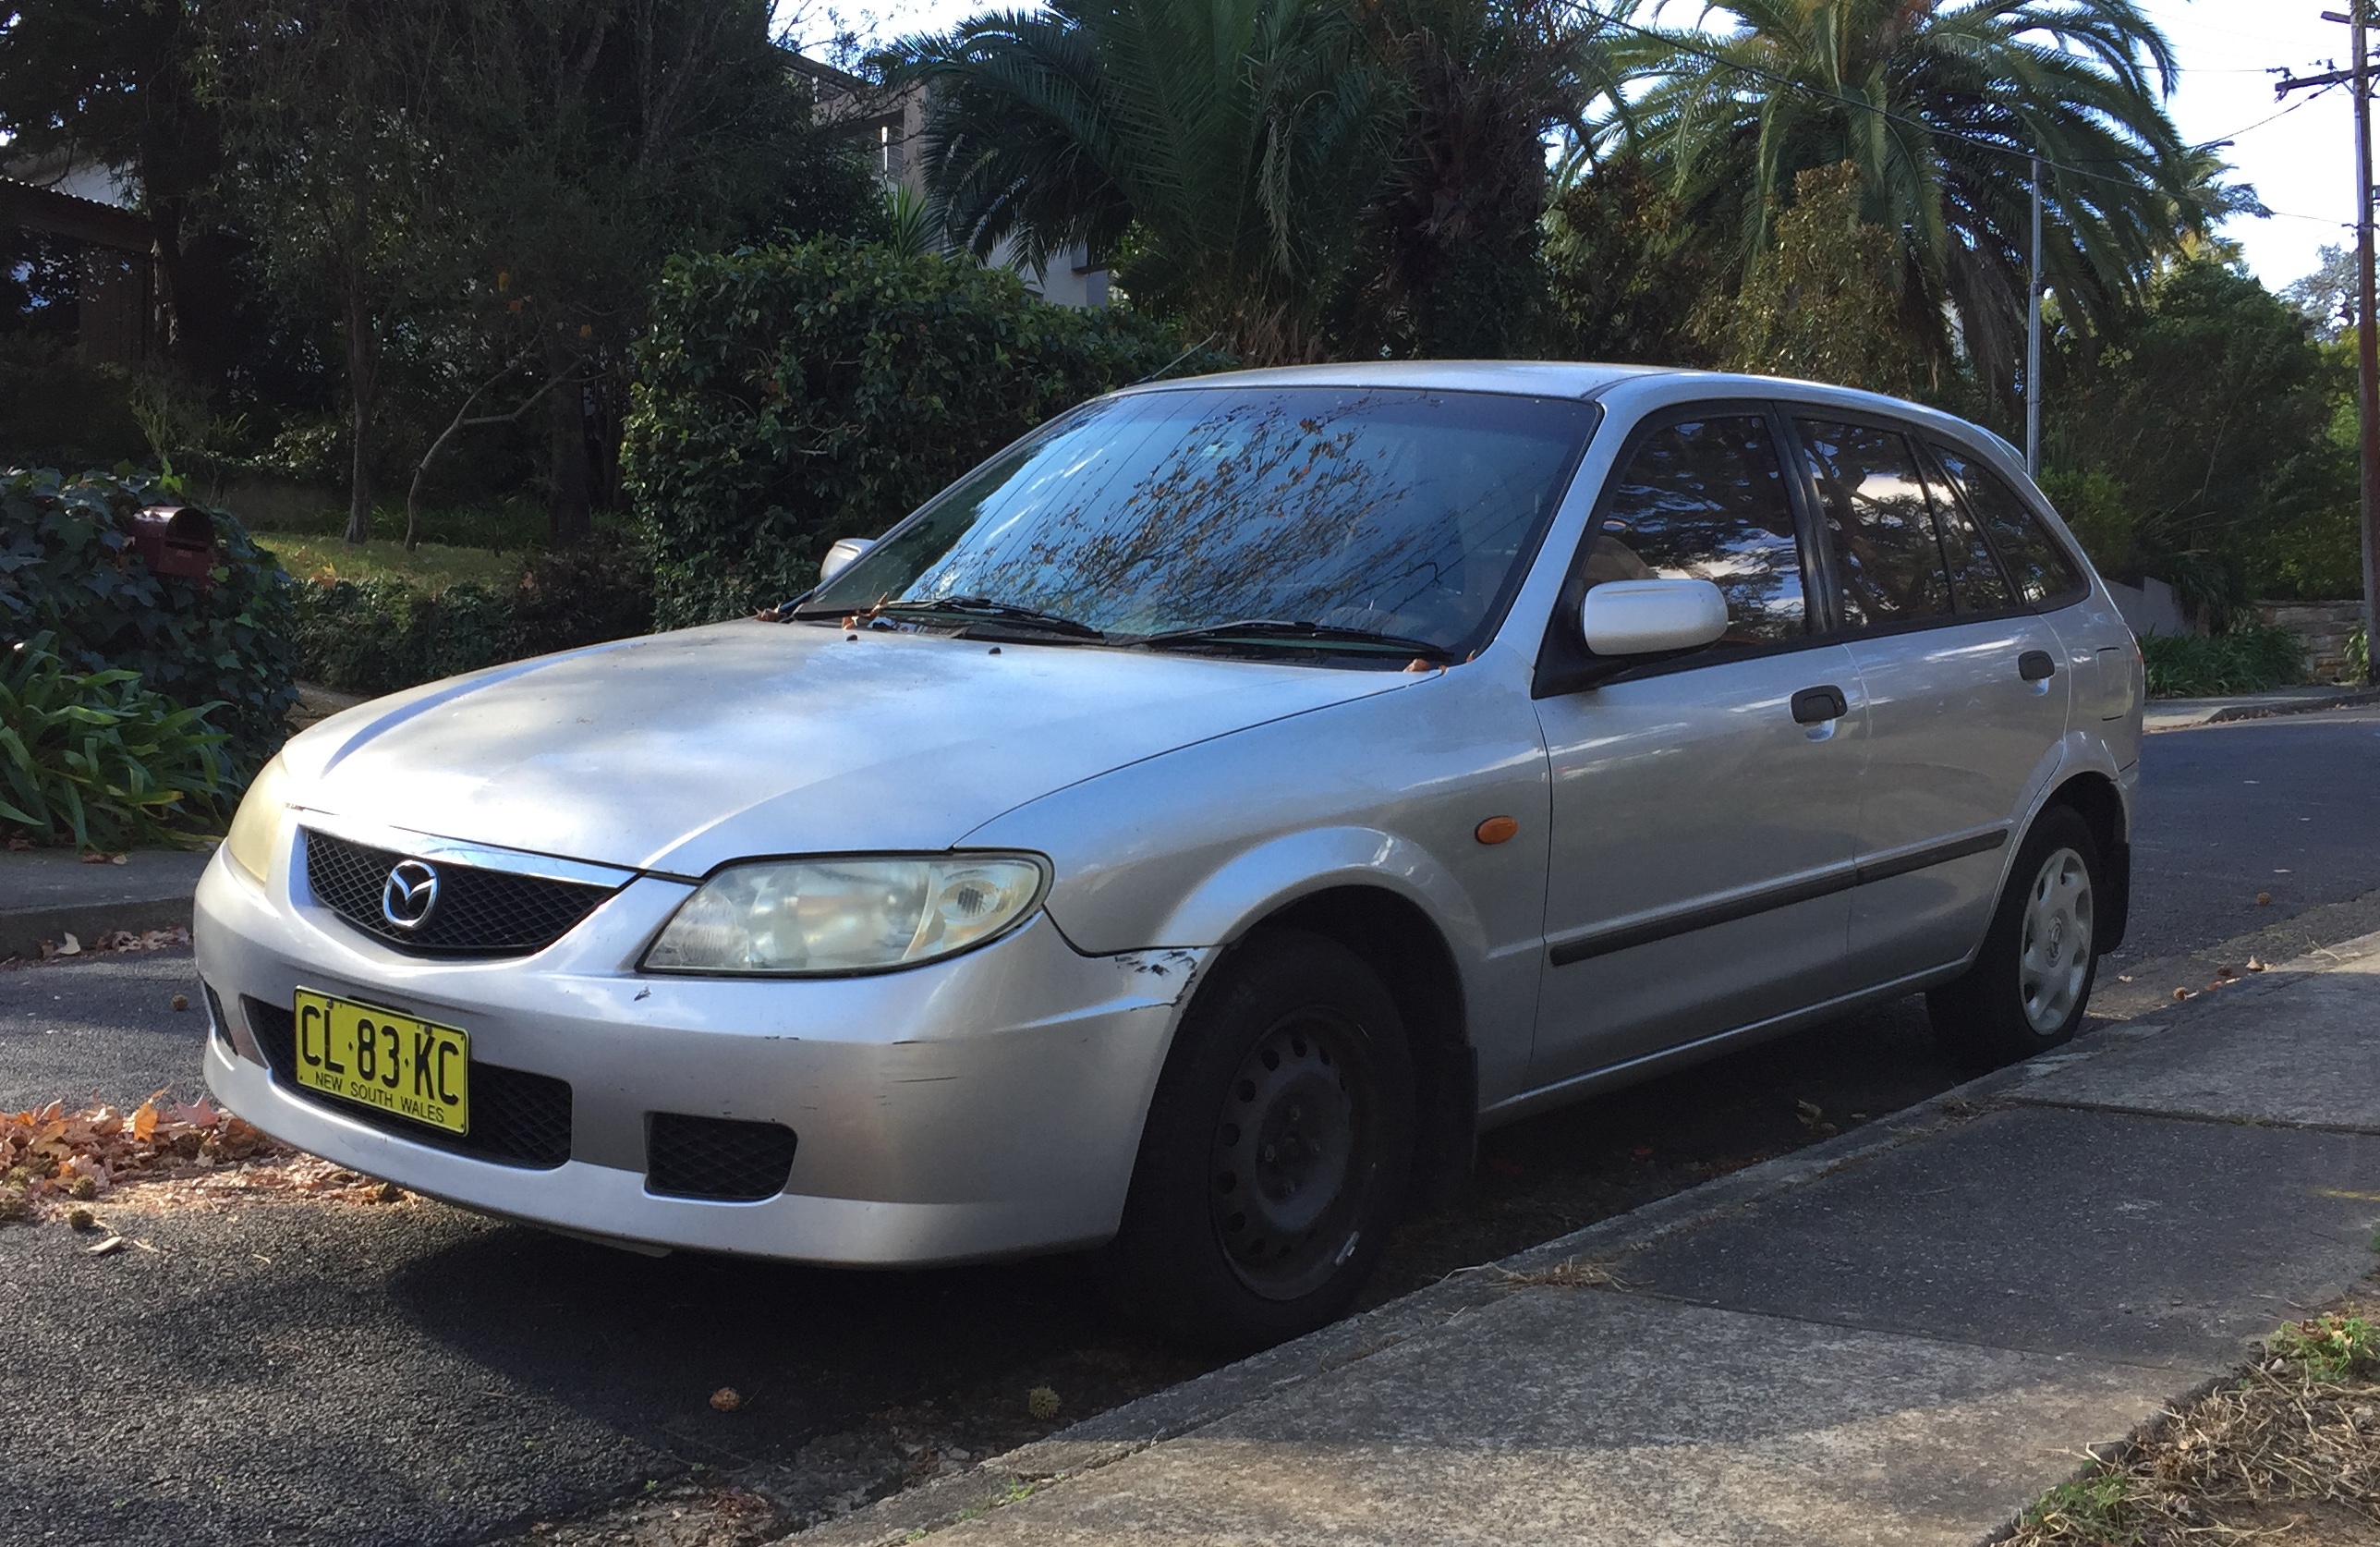 Picture of Sasa's 2002 Mazda Astina